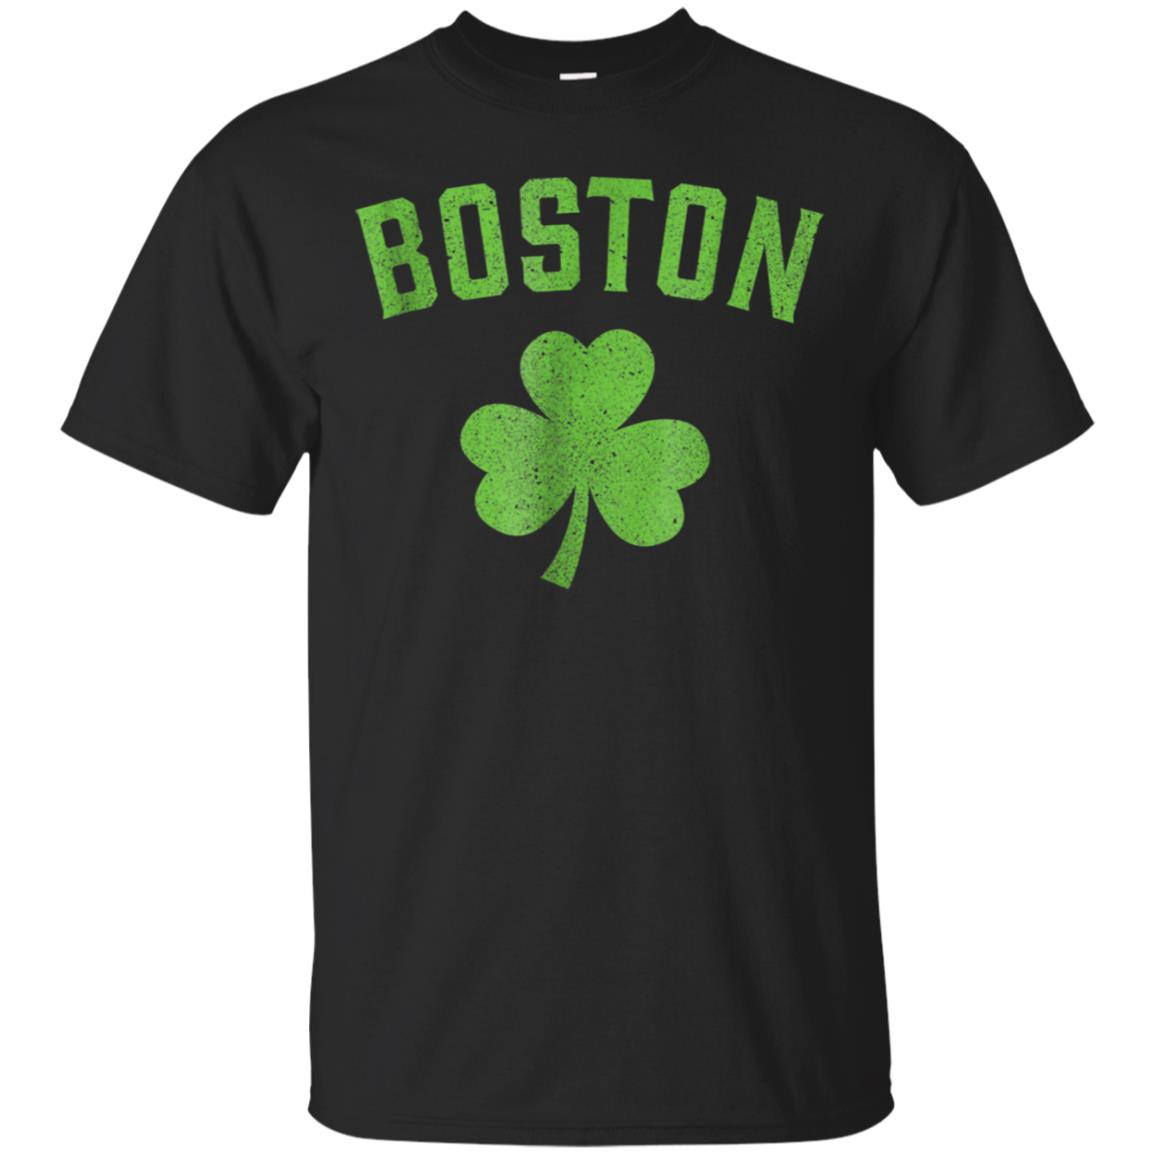 Boston, St Patrick's day t-shirt - Patty's day shamrock tee 99promocode